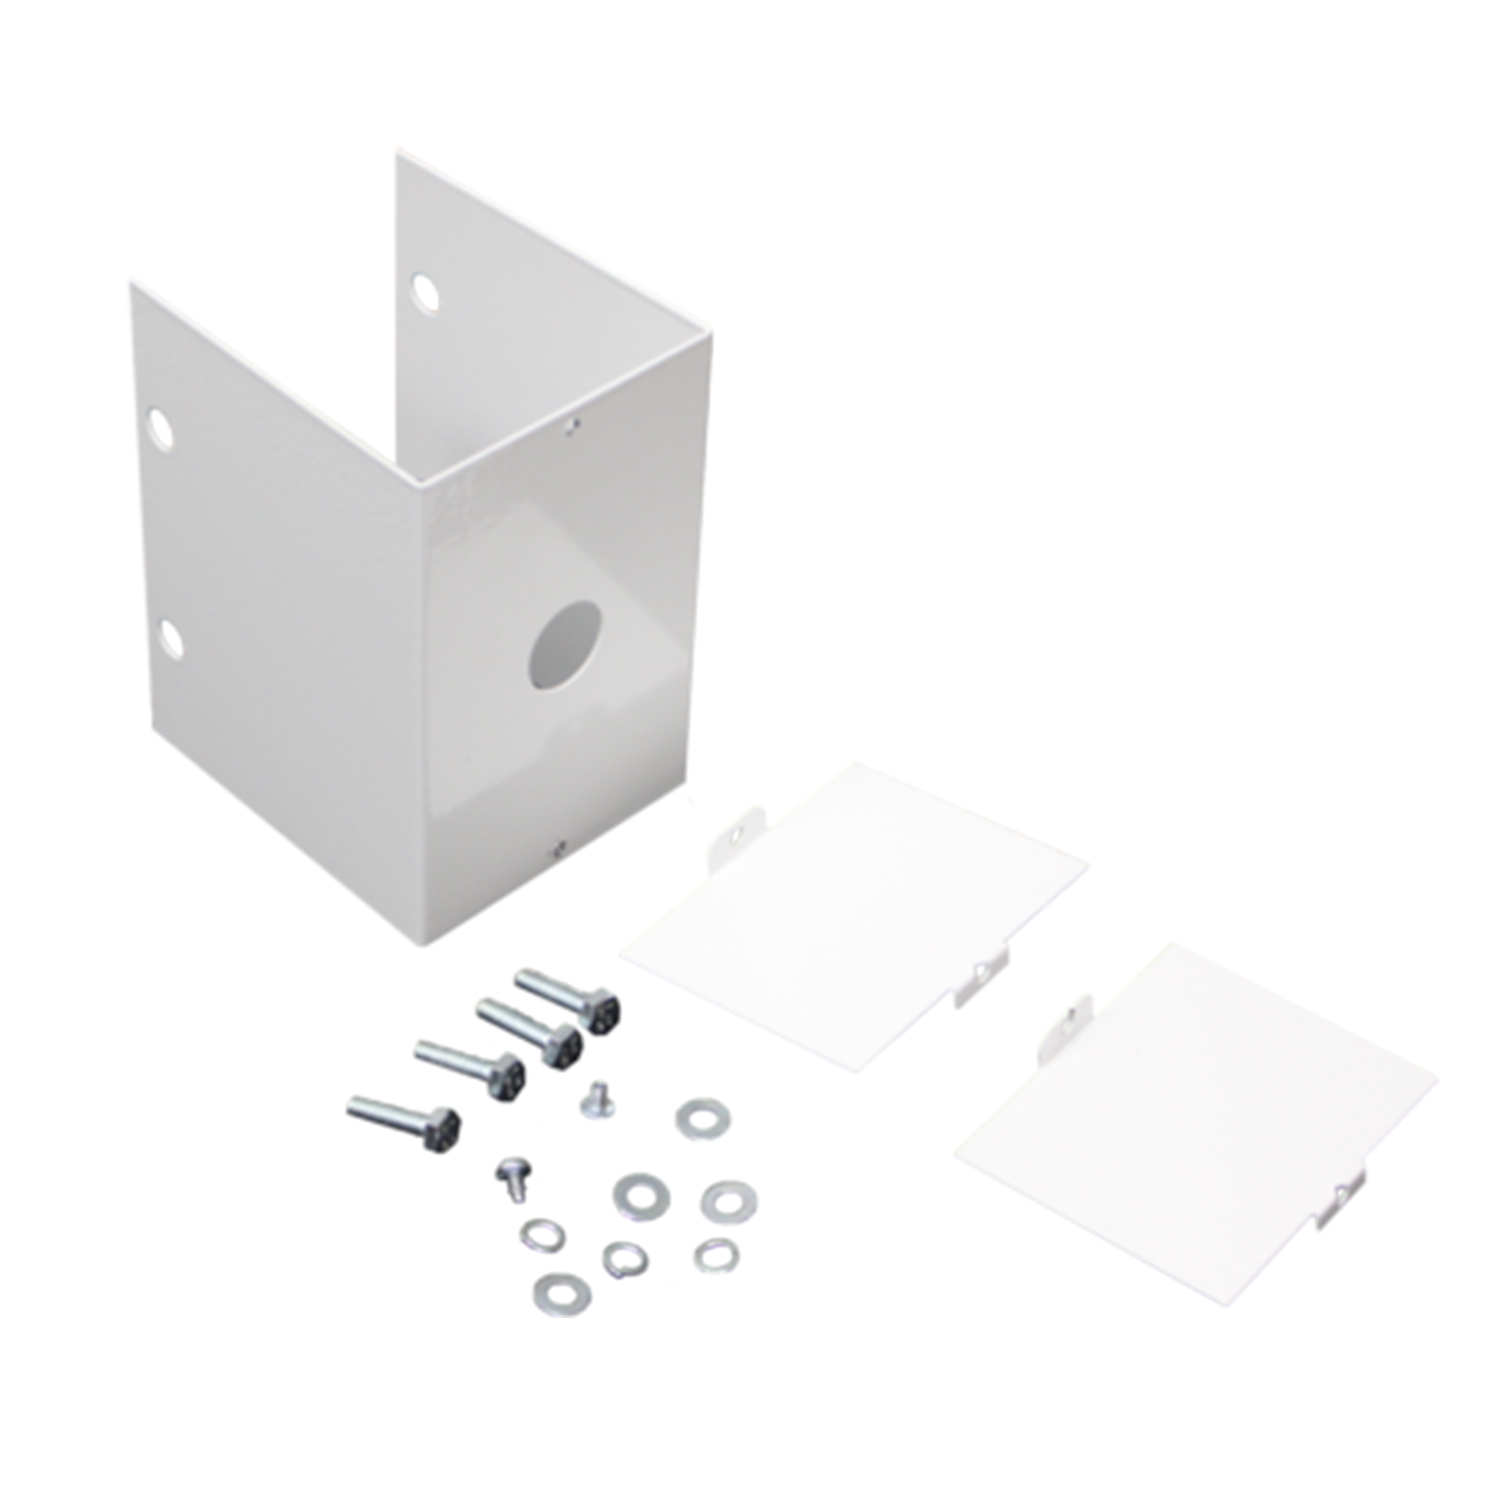 LHB/PMA 99652 LINEAR LED HIGH BAY SERIES II PENDANT MOUNTING ASSEMBLY